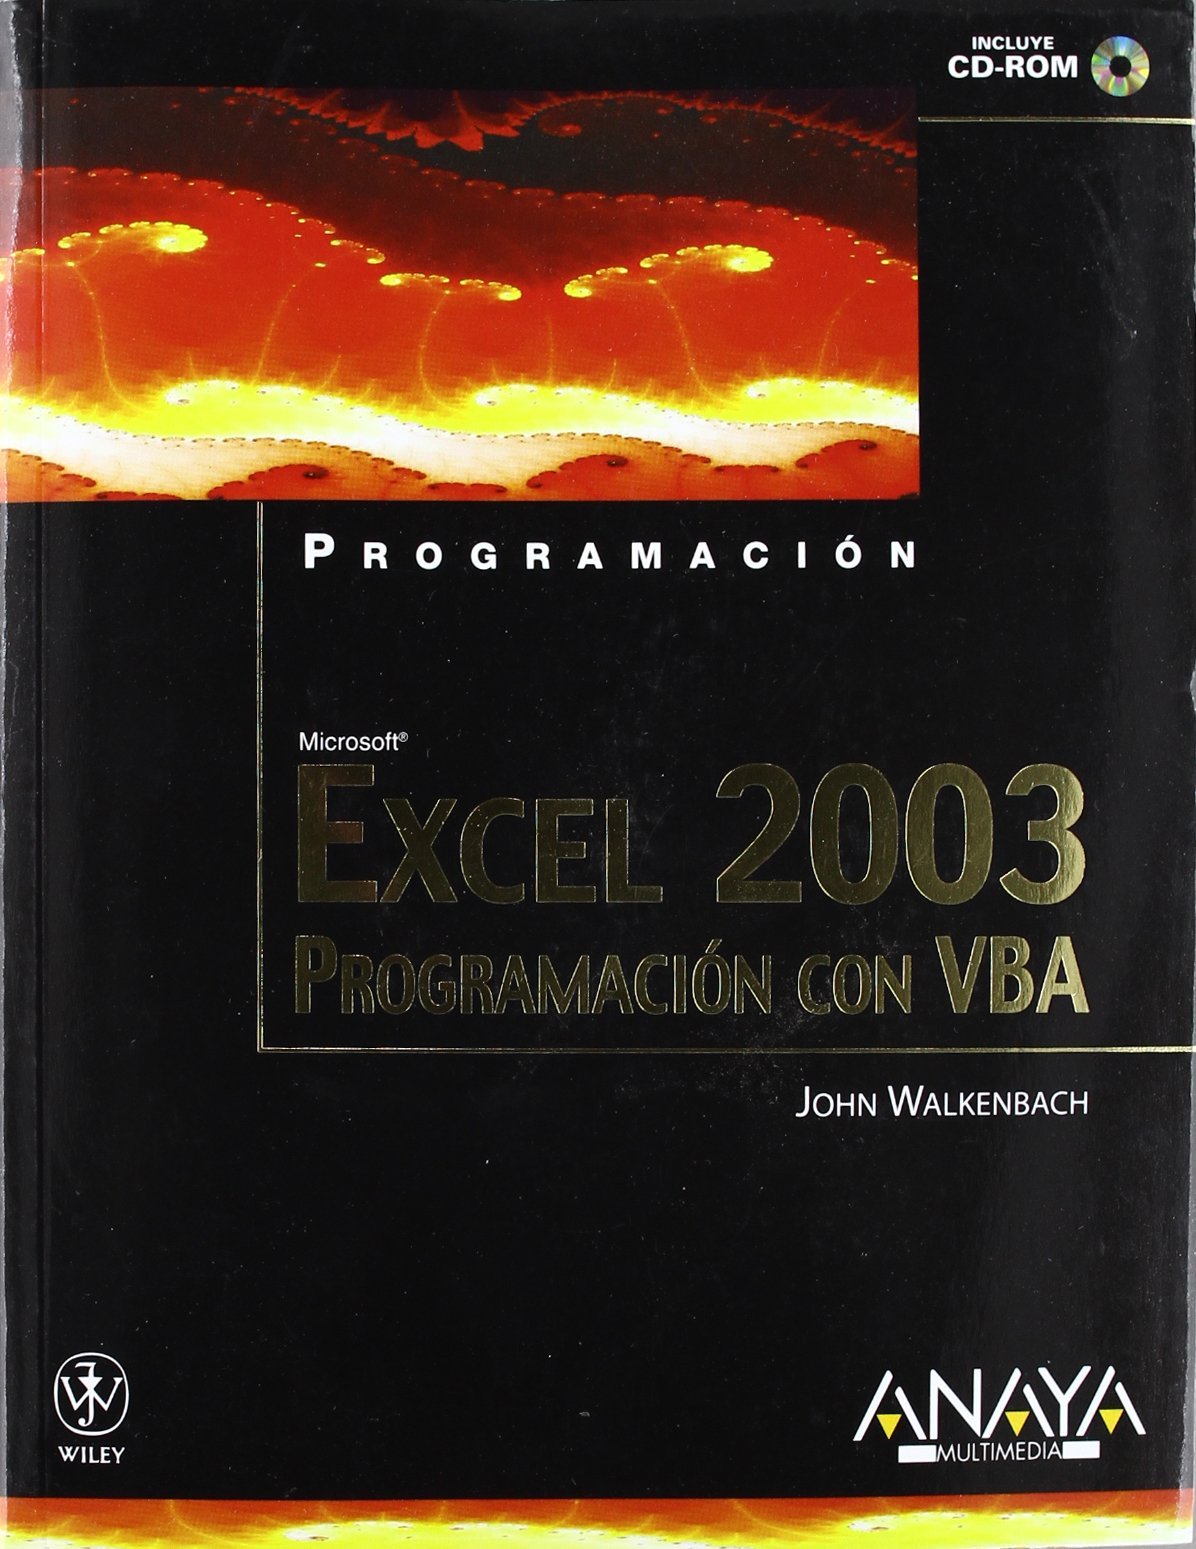 excel-2003-programacion-con-vba-excel-2003-power-programming-with-vba-programacion-programming-spanish-edition